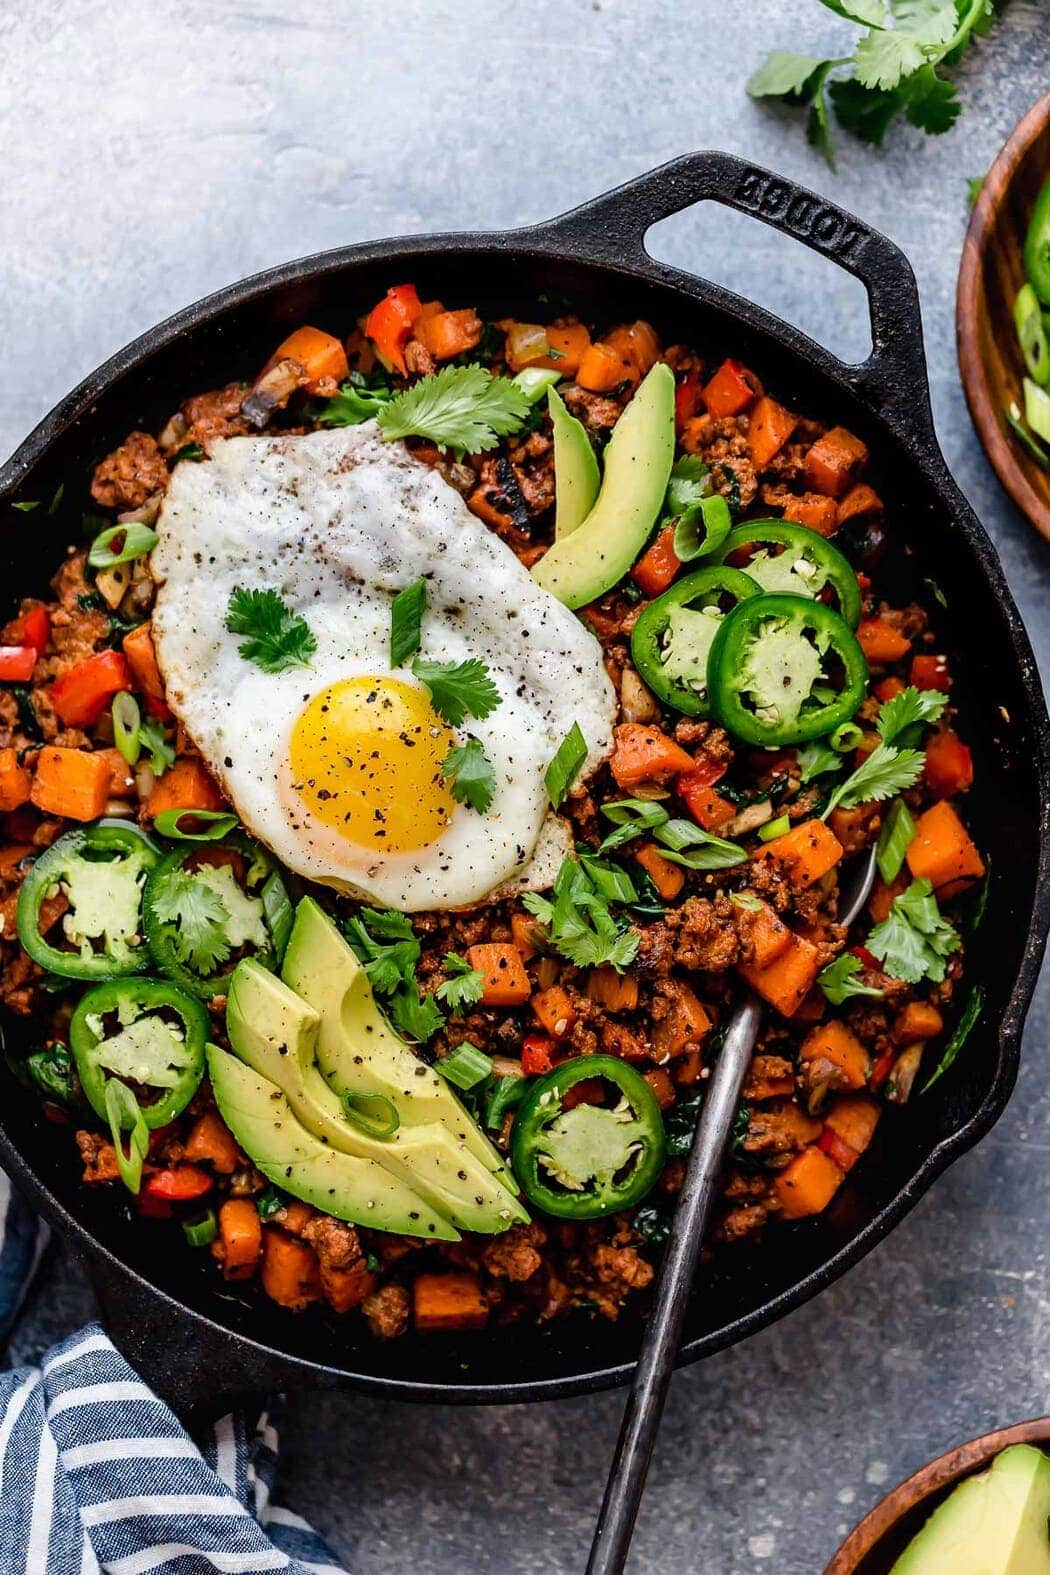 Tex-Mex Sweet Potato Hash in a black skillet with a serving spoon in it as well as a fried eggs, avocado slices, jalapeño slices, green onion and cilantro garnished over top.